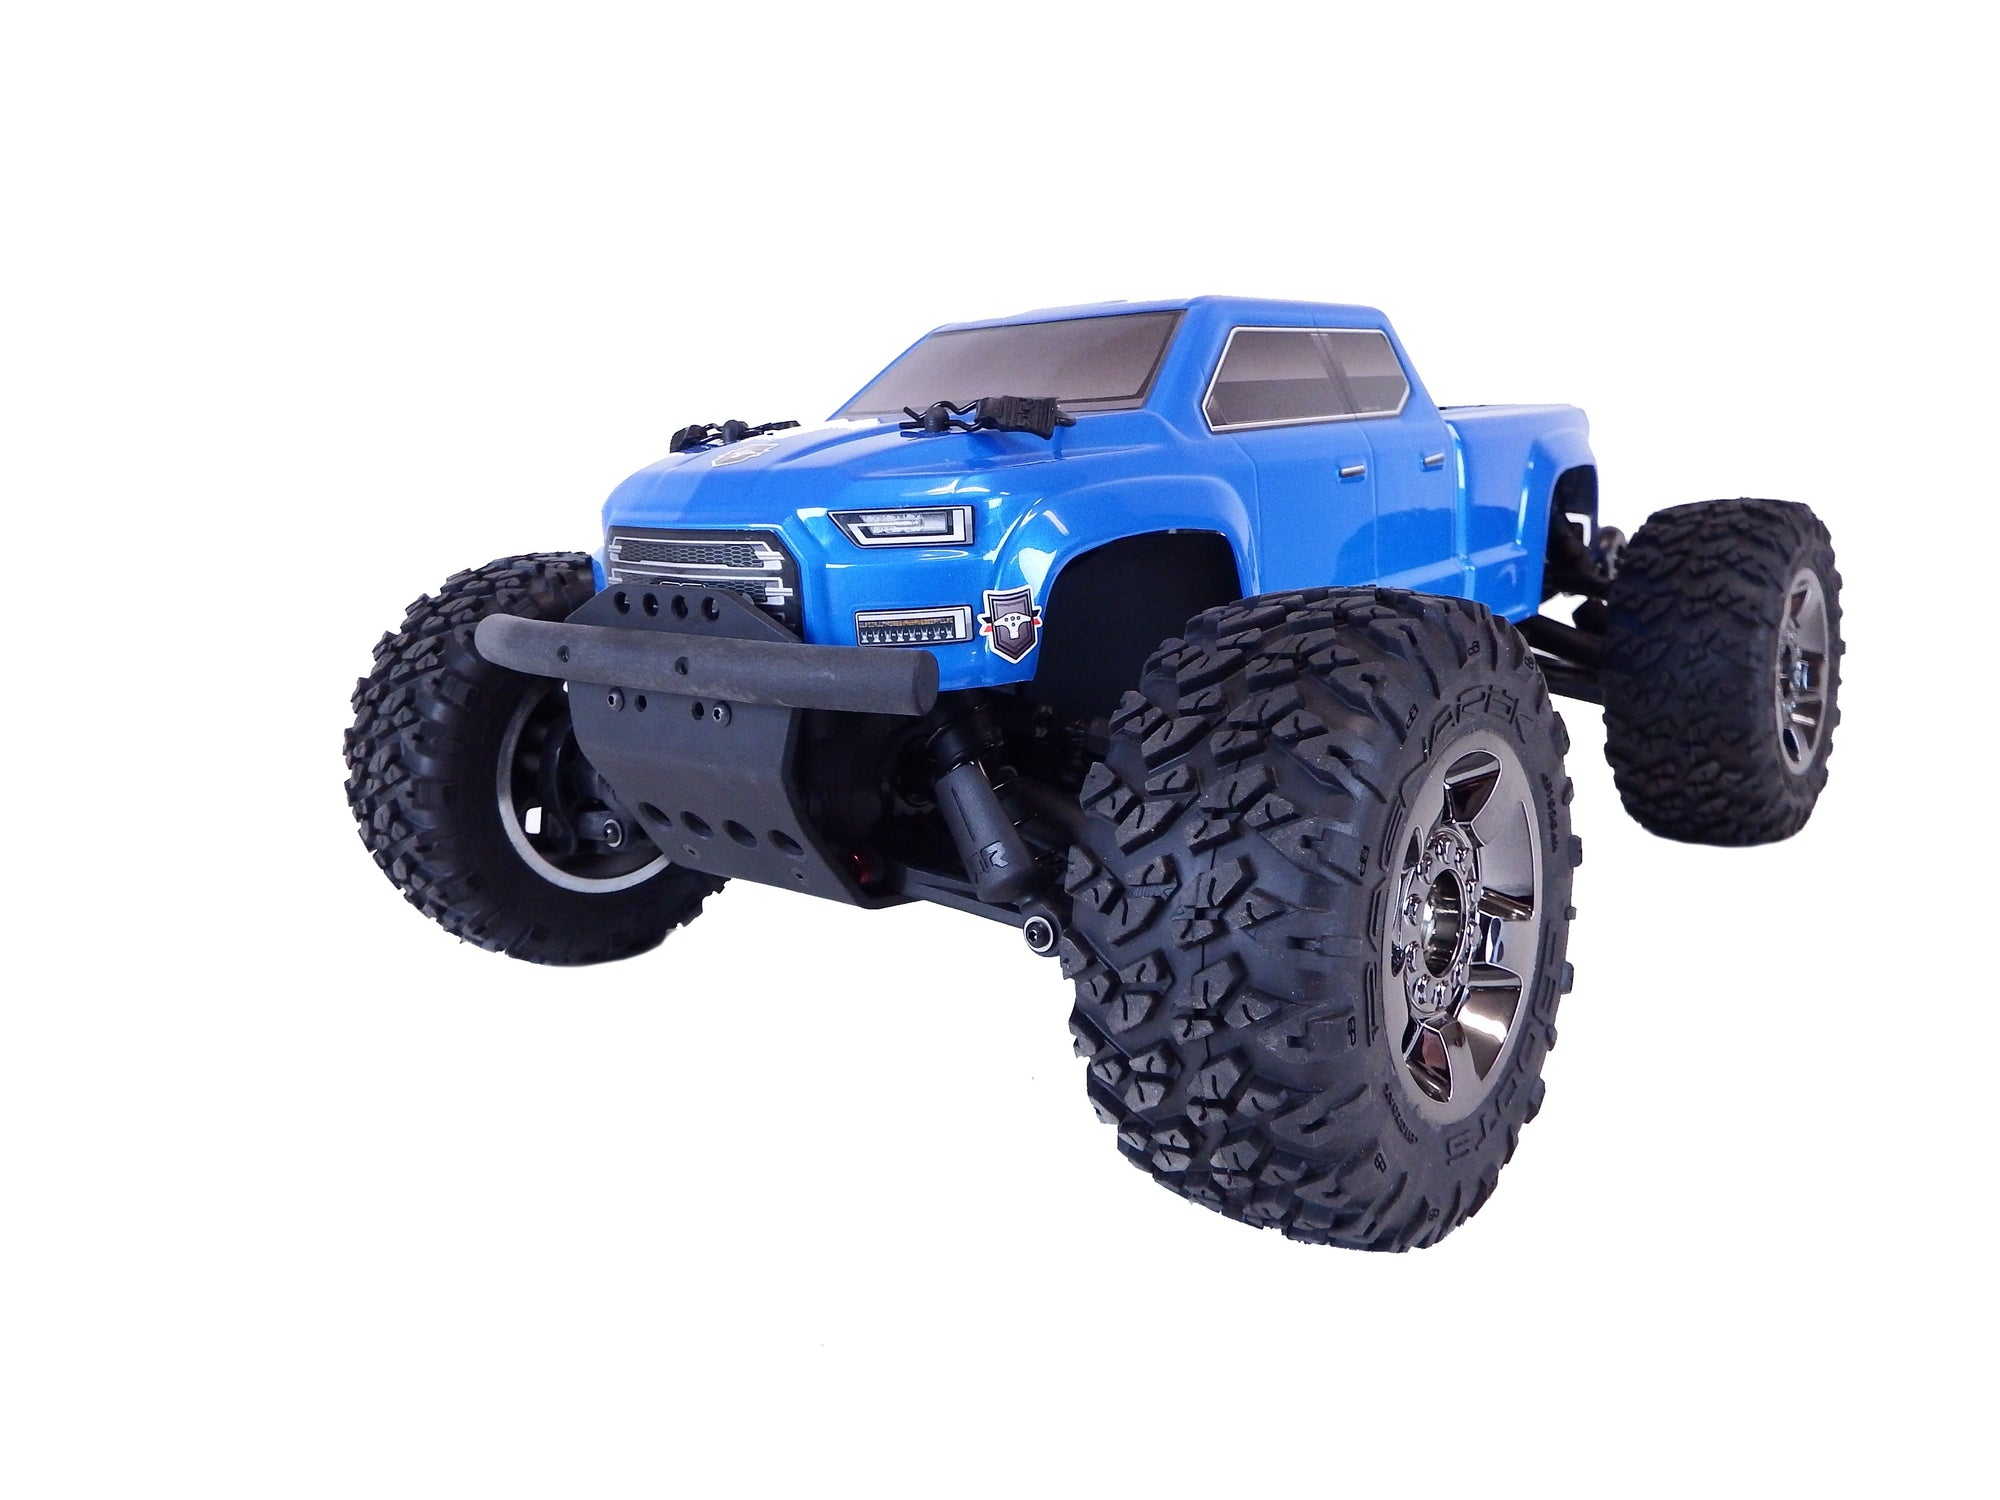 T Bone Racing The Rc Protectors Specializing In Car Armor Traxxas Stampede 4x4 Vxl 1 10 Scale 4wd Brushless Monster Truck Arrma Big Rock 3s Blx